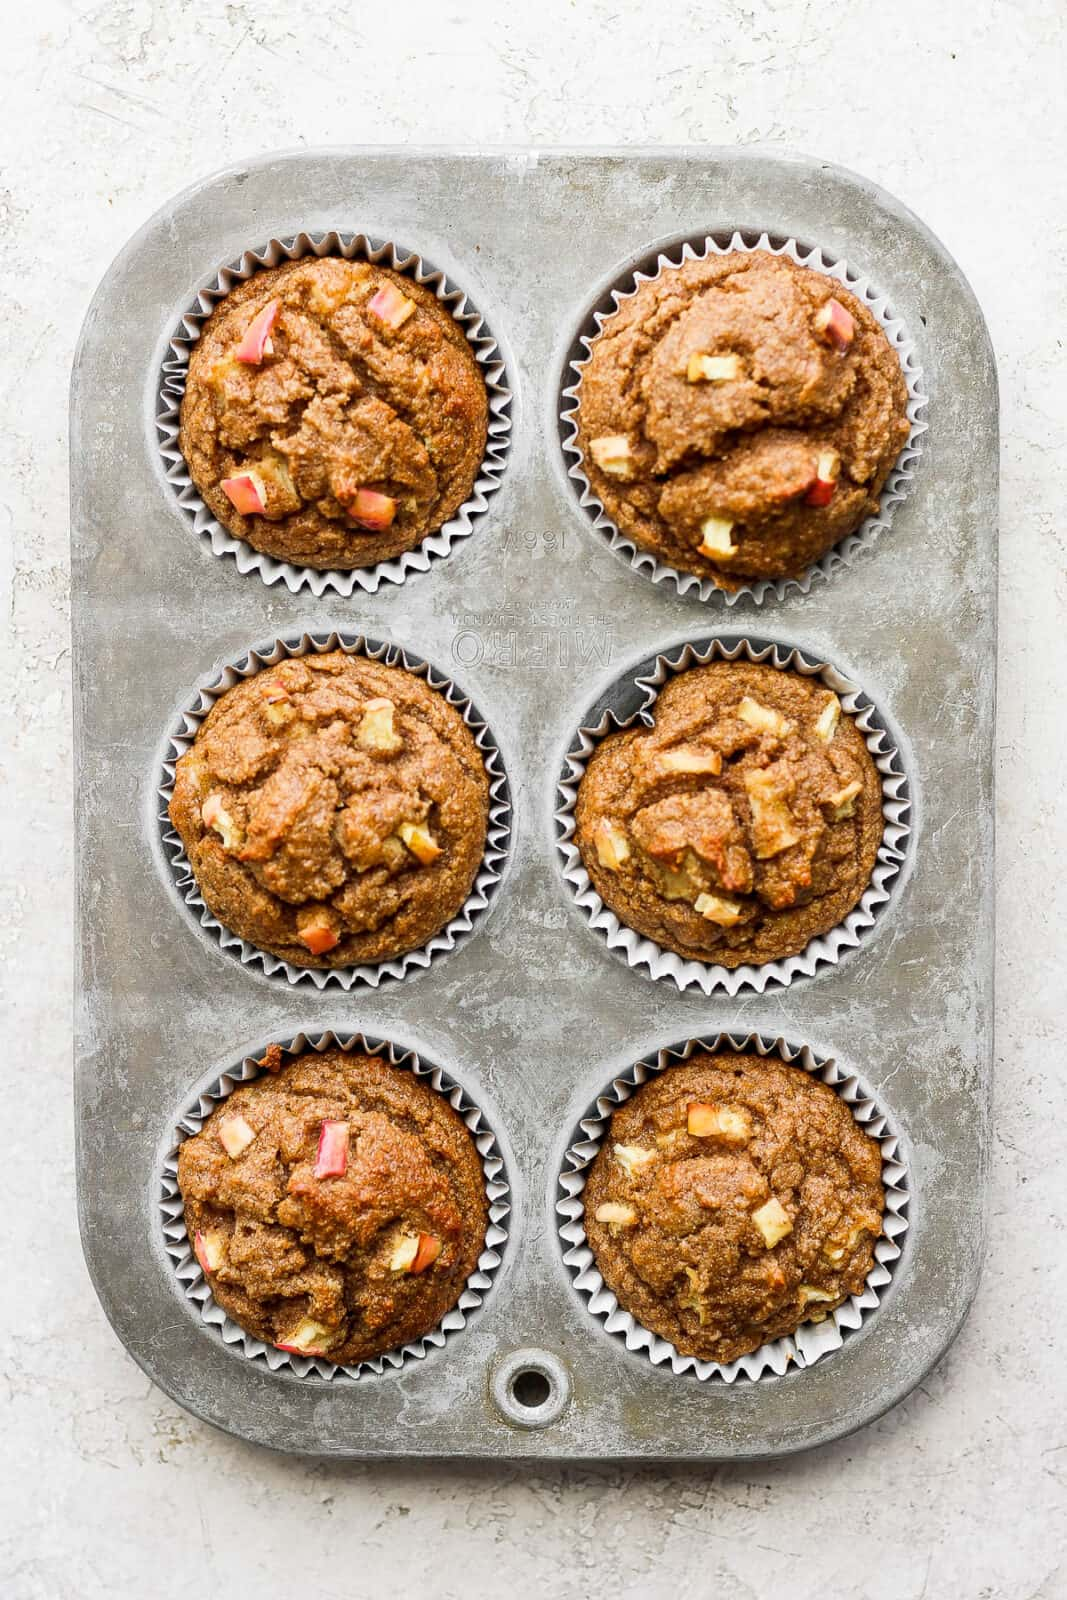 Apple cinnamon muffins in a muffin tin after baking.